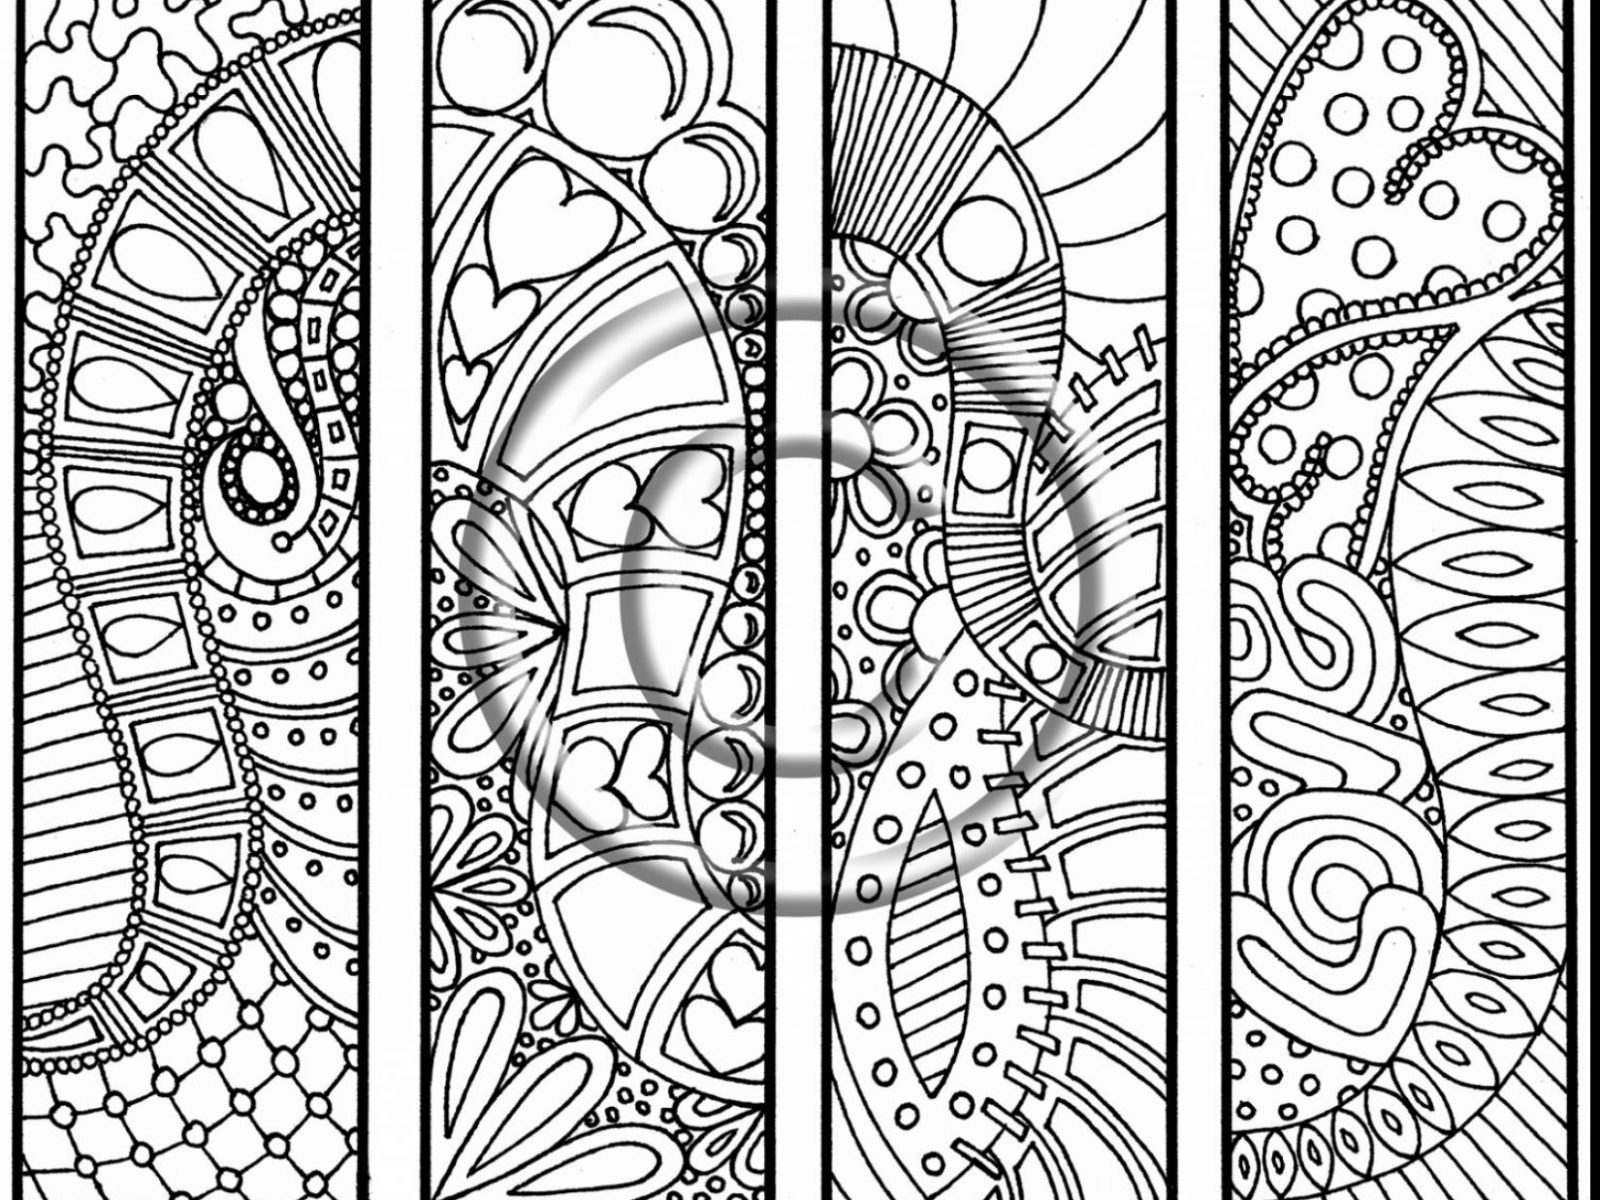 free abstract coloring pages abstract doodle coloring page free printable coloring pages pages coloring abstract free